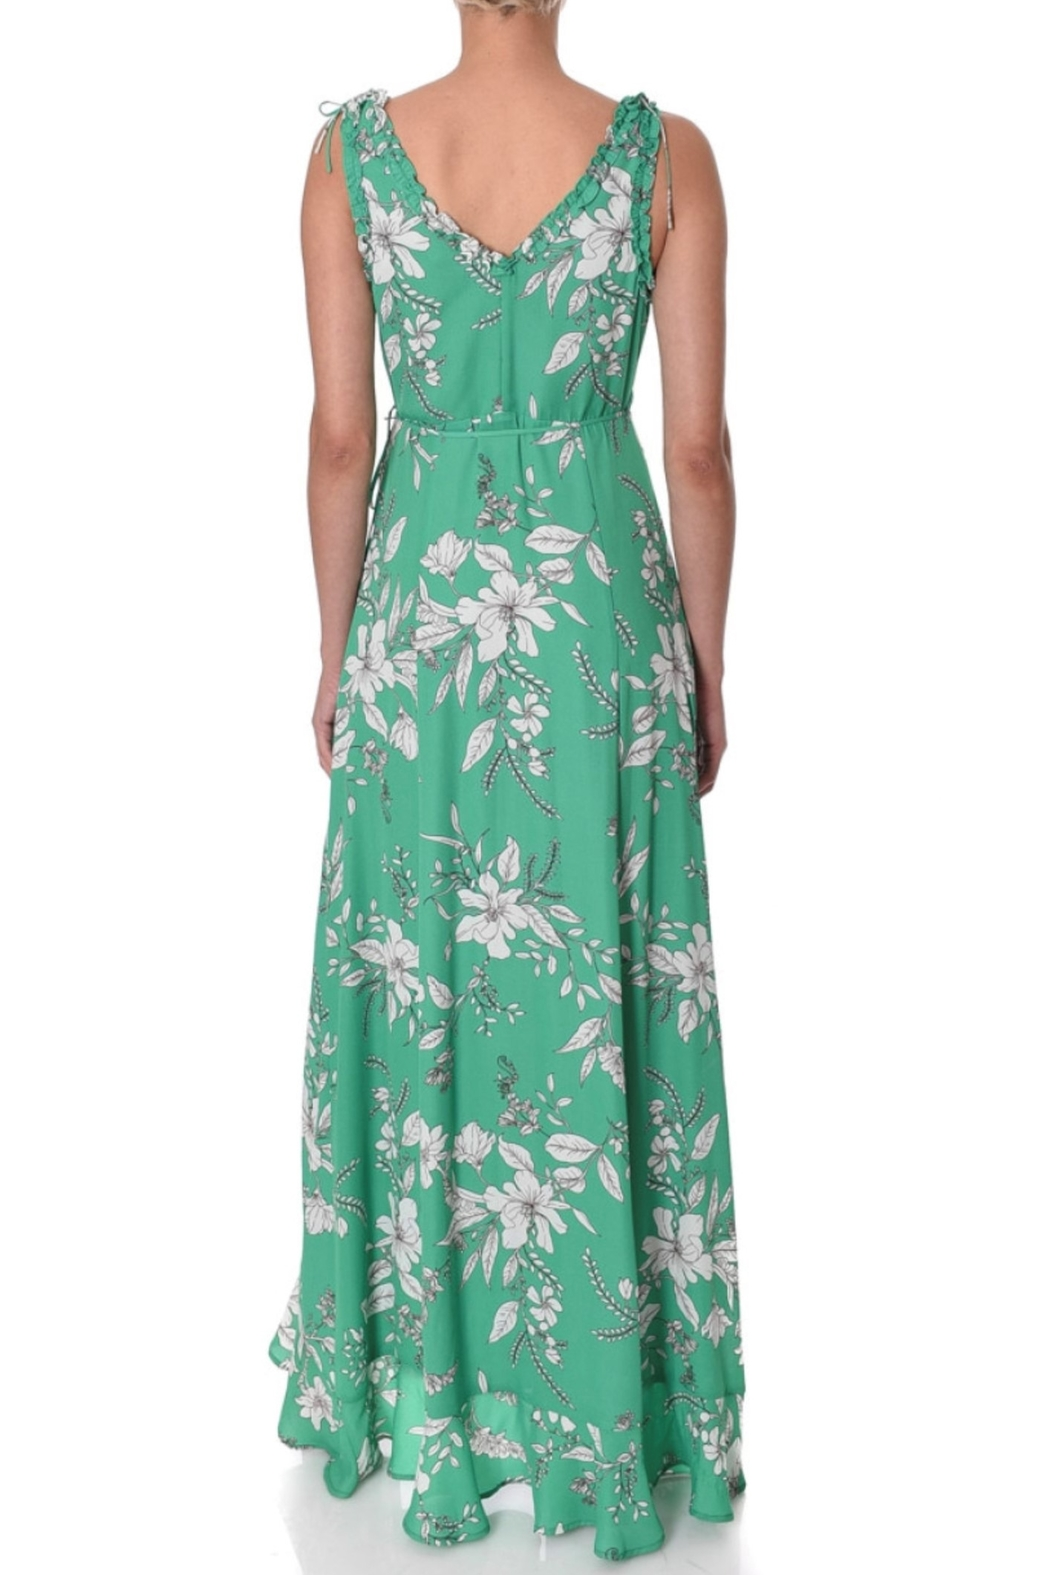 If By Sea Floral Maxi Dress - Front Full Image